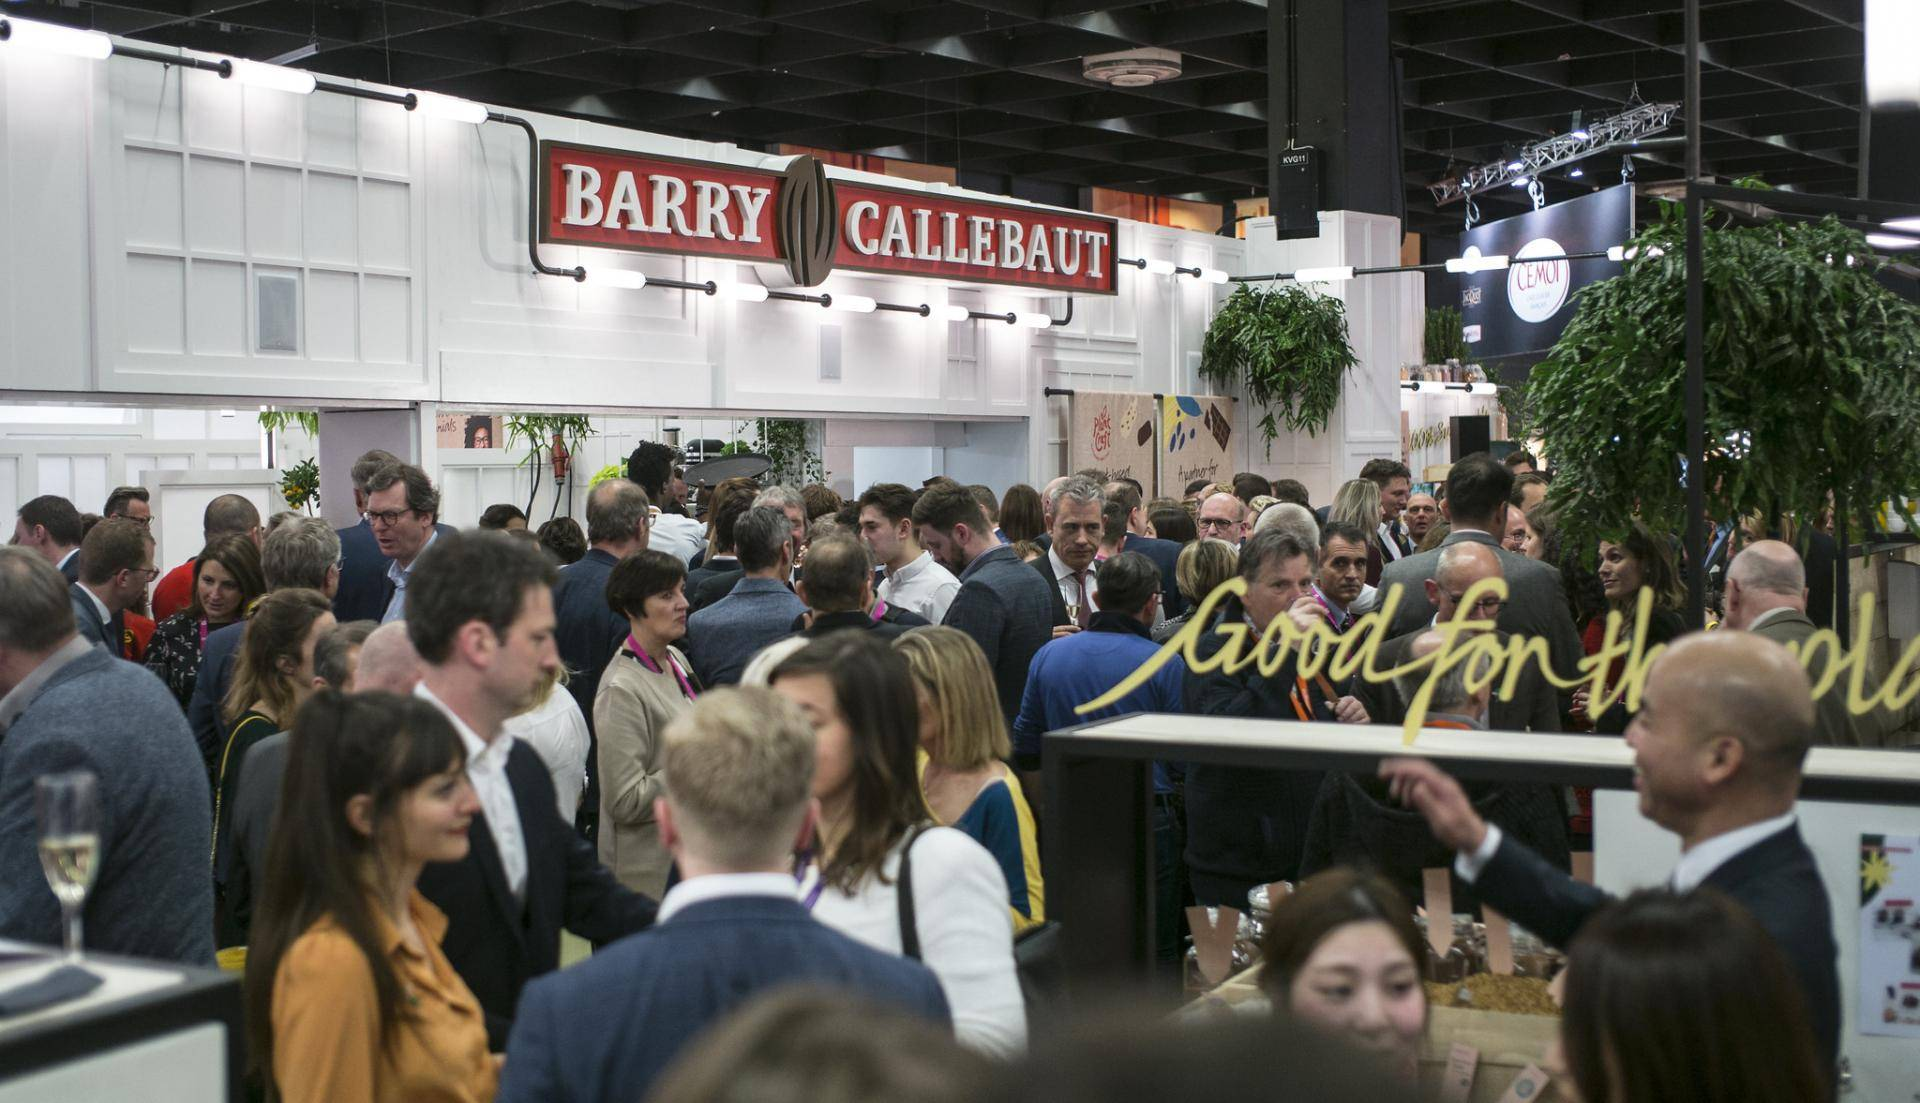 Barry Callebaut group